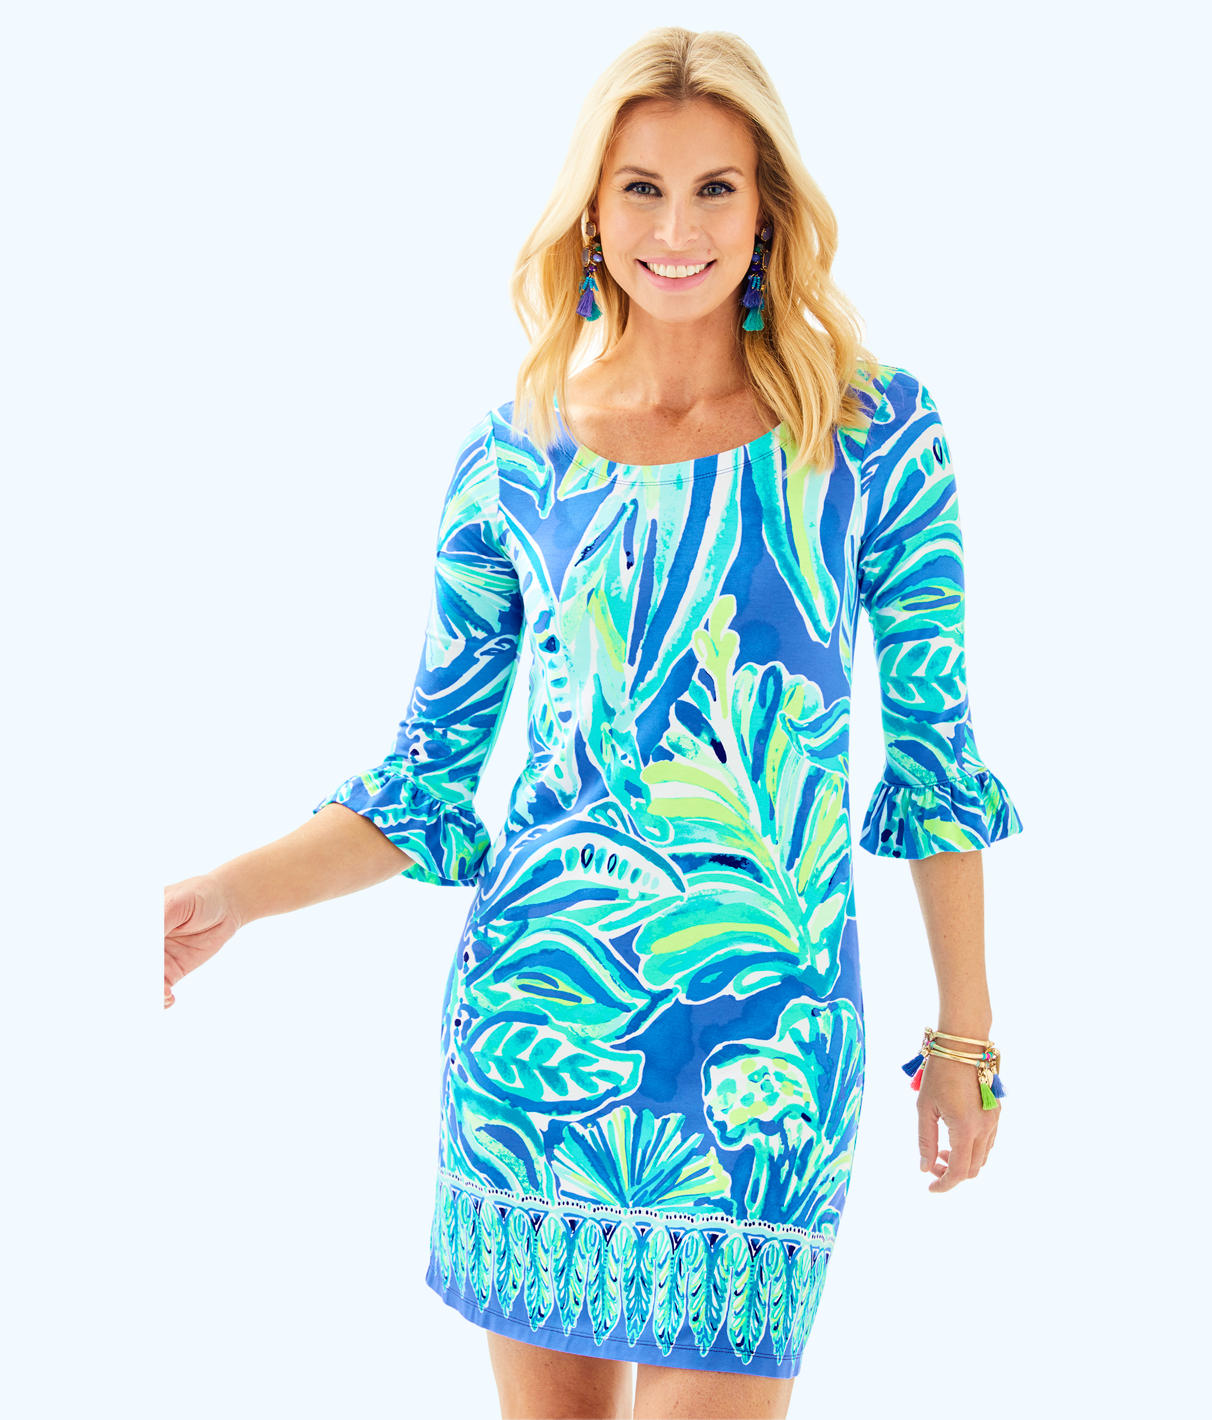 Lilly Pulitzer Lilly Pulitzer Womens UPF 50+ Sophie Ruffle Dress